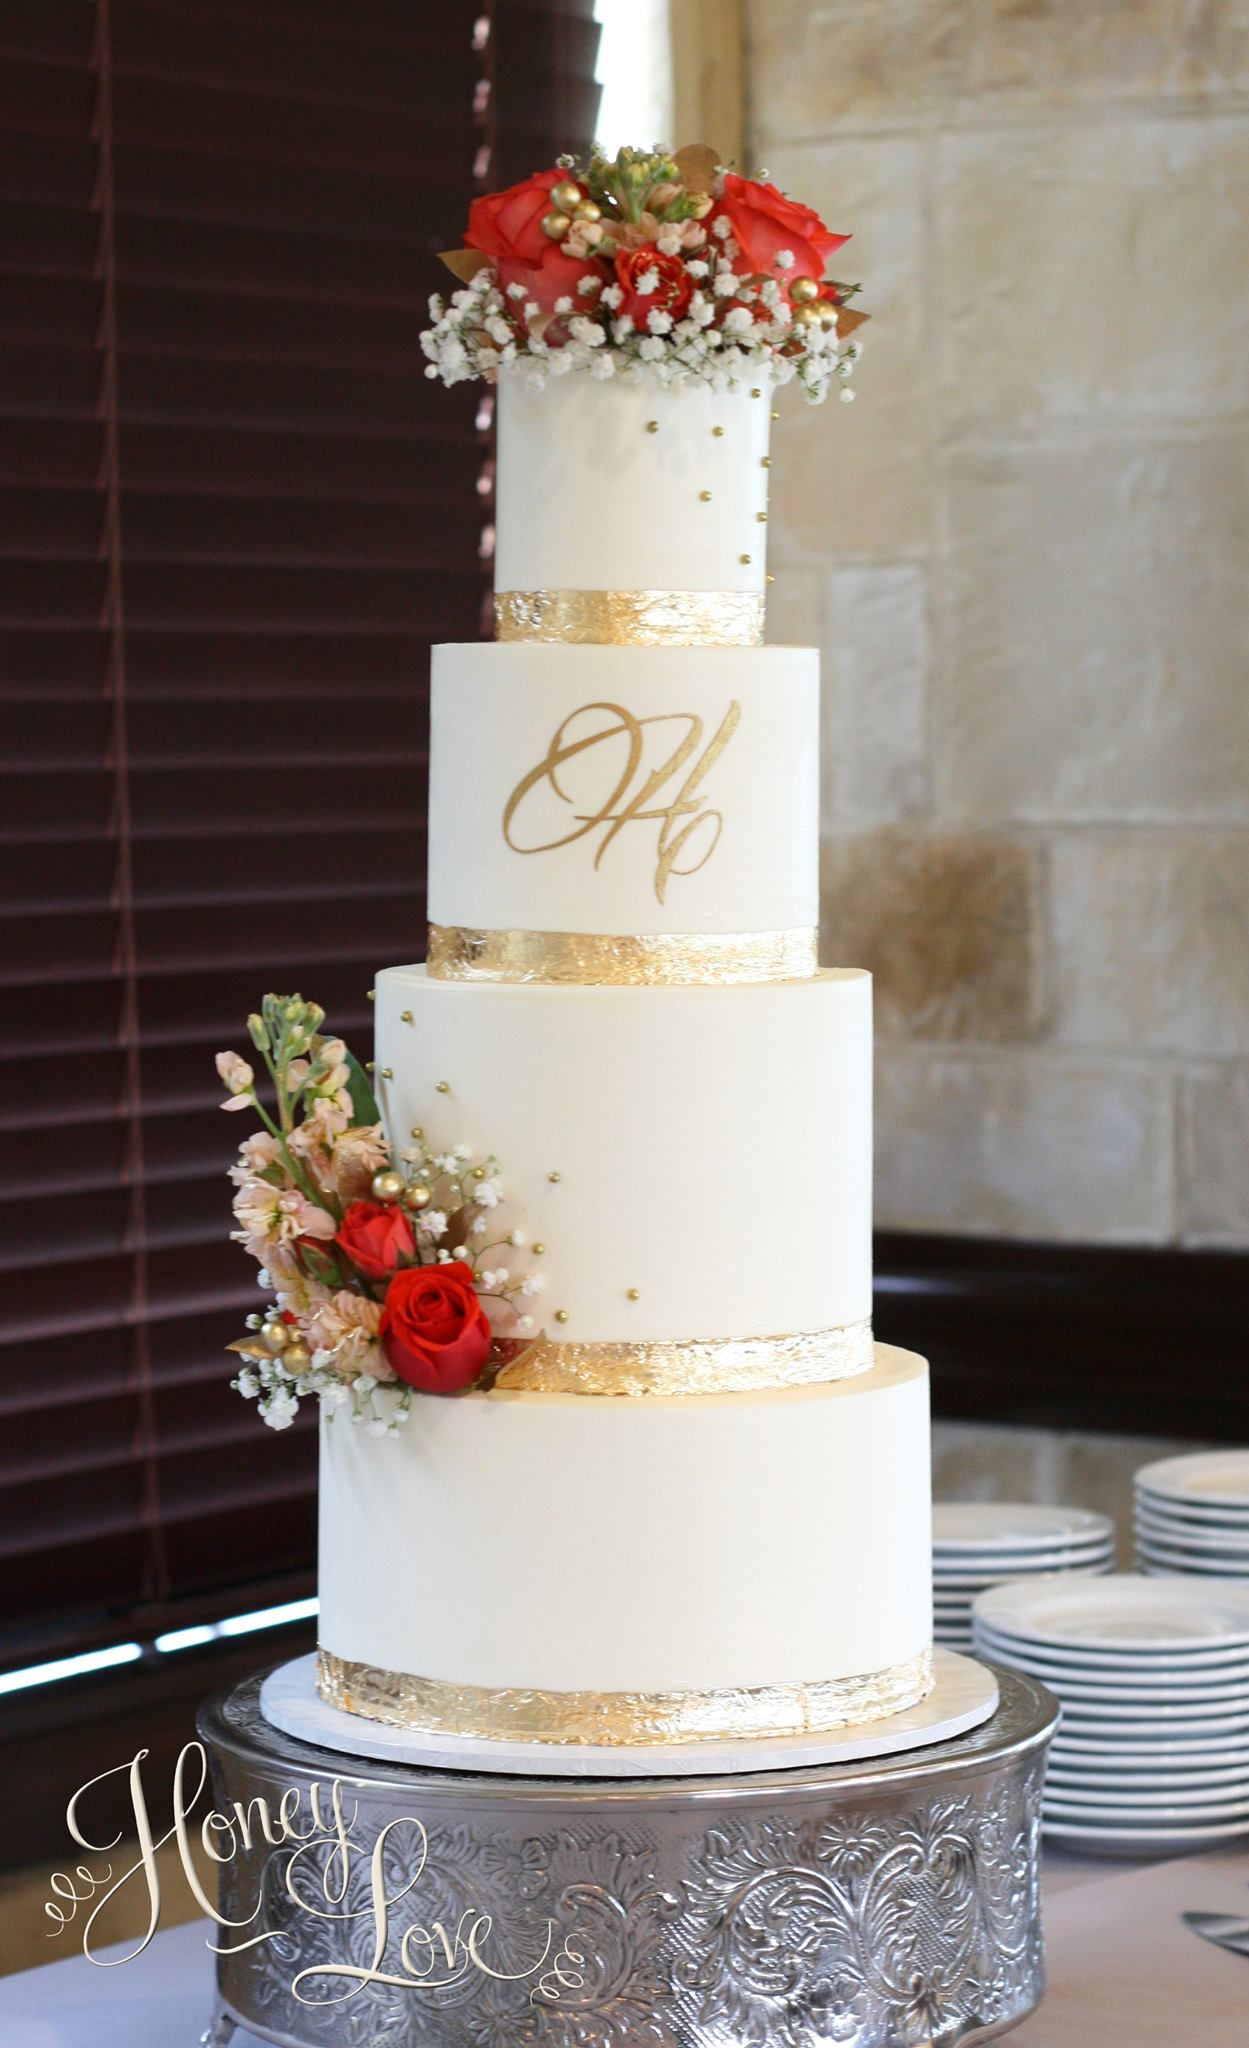 Buttercream wedding cake with gold leaf details and fresh flower accents.